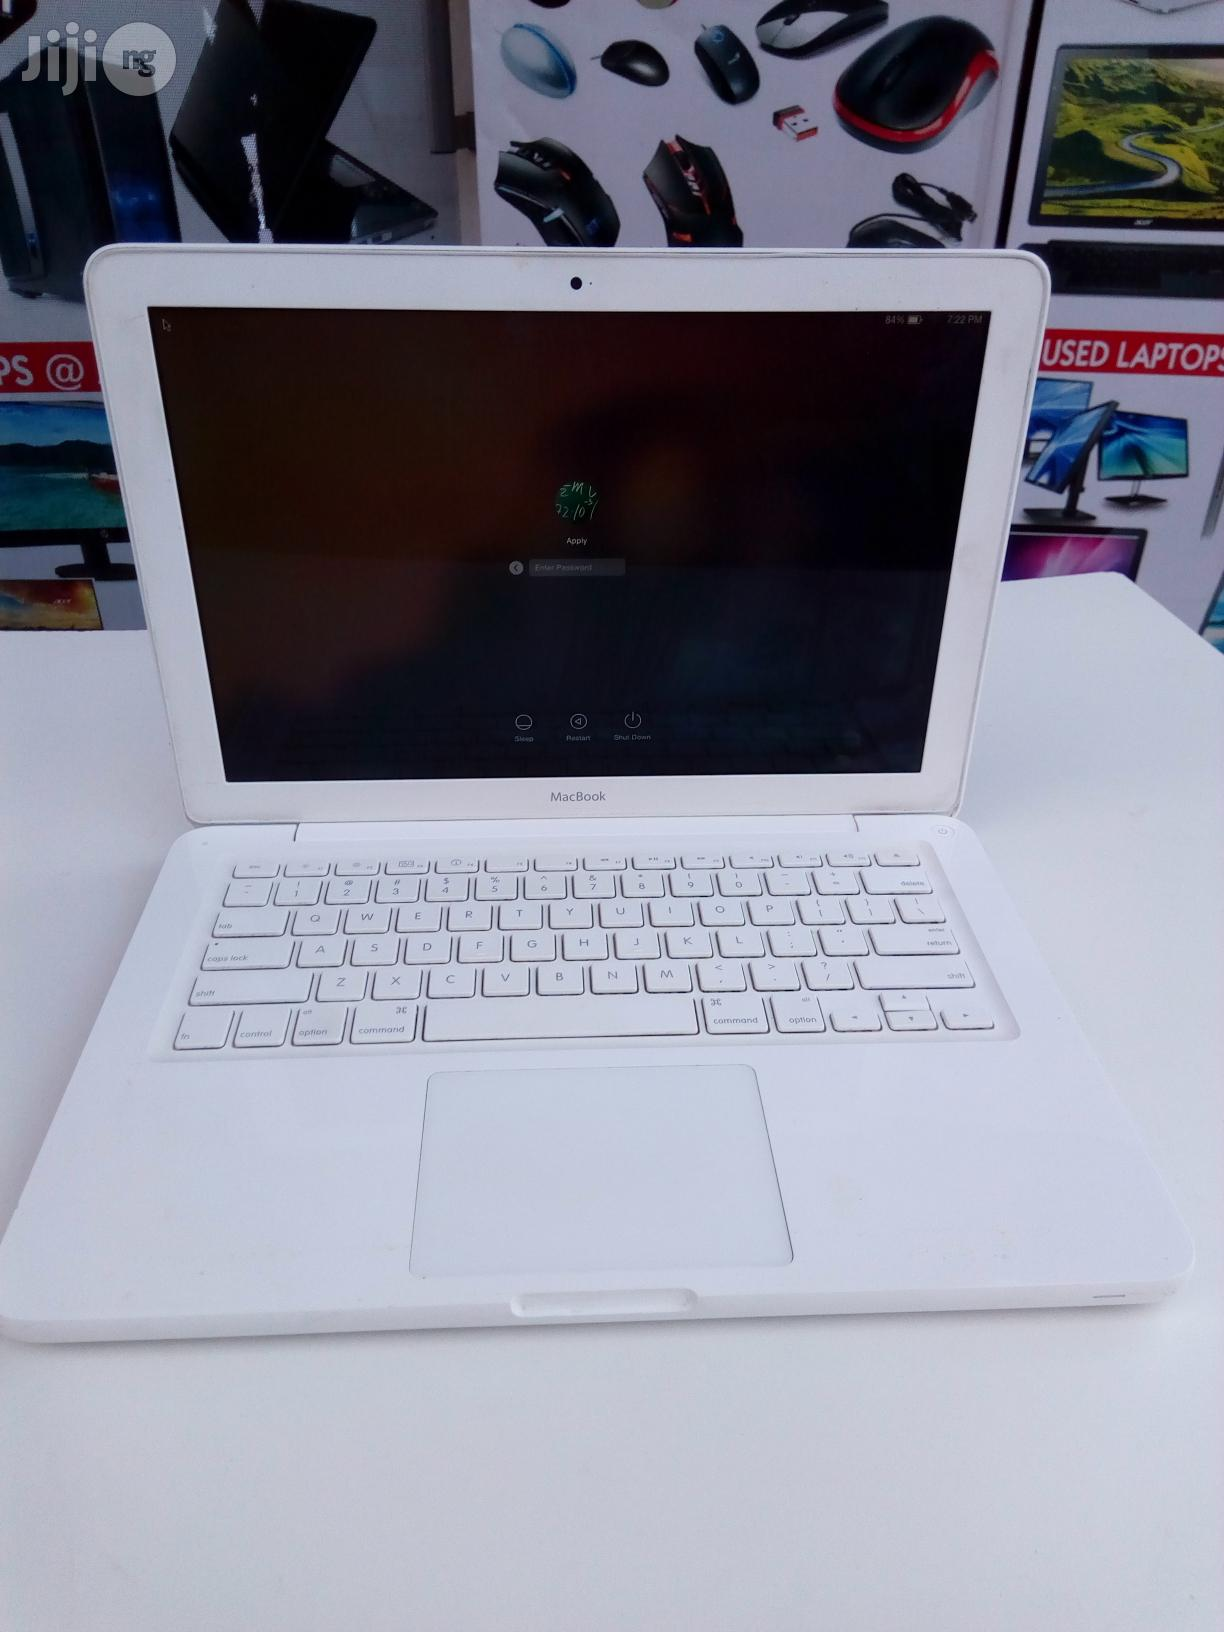 Laptop Apple MacBook 4GB Intel Core 2 Duo HDD 250GB | Laptops & Computers for sale in Oshodi, Lagos State, Nigeria